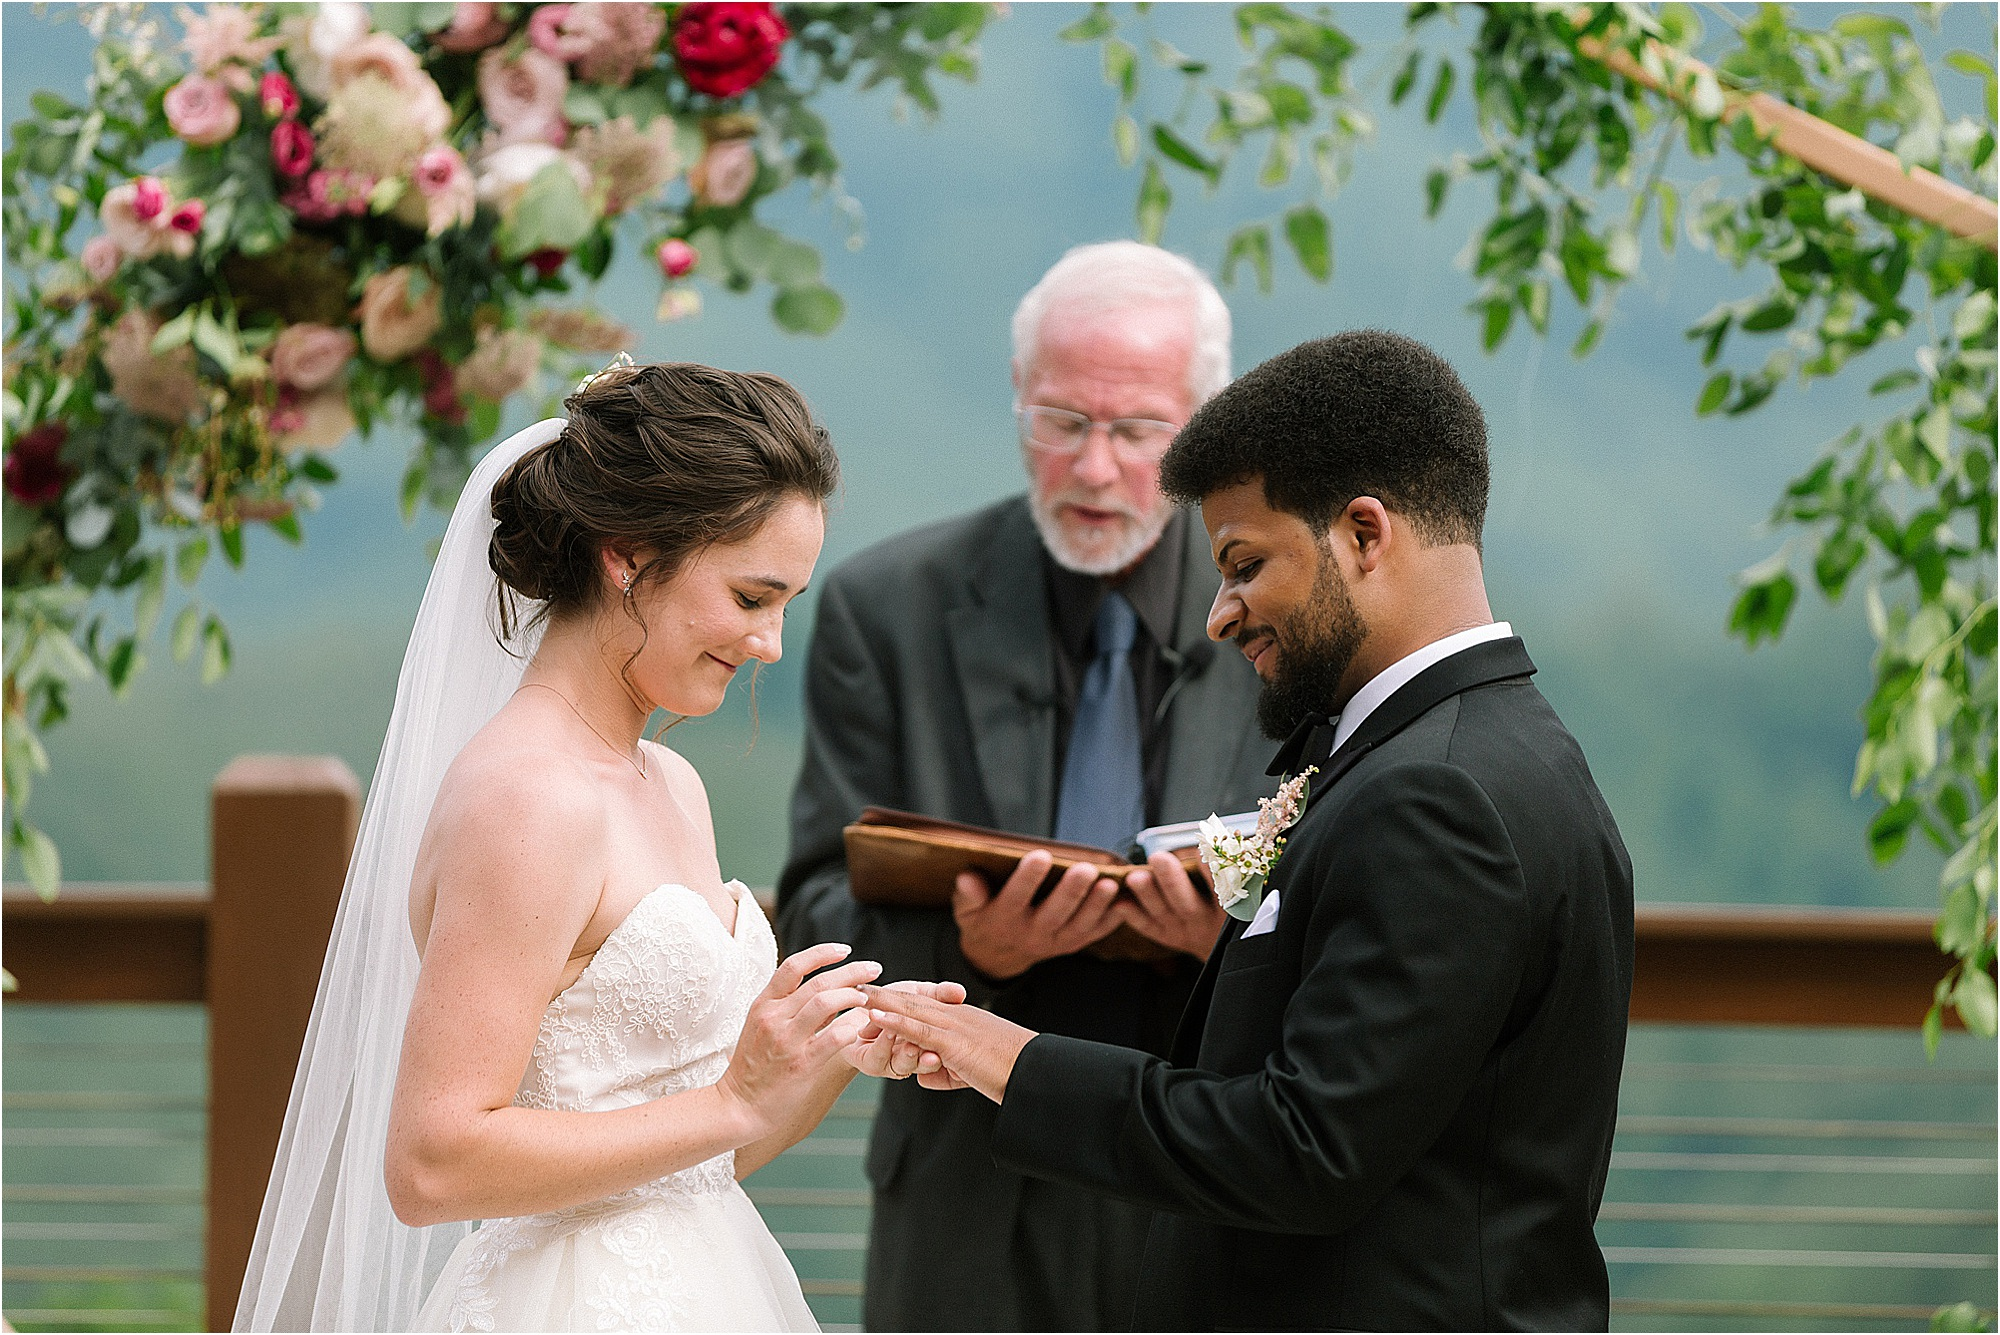 bride and groom exchange rings at wedding ceremony on mountaintop